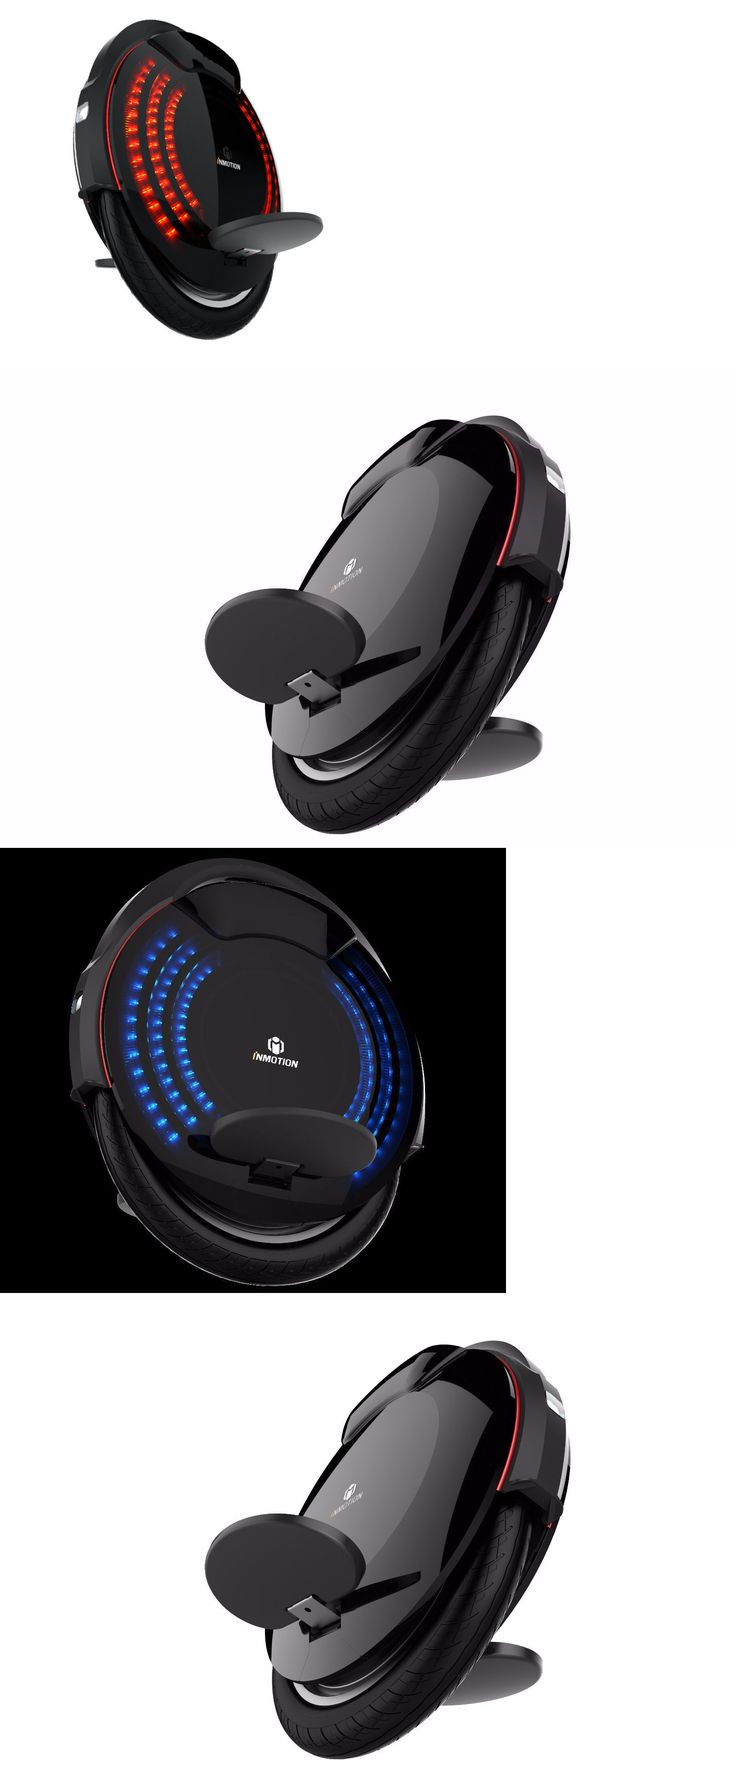 Electric Scooters 47349: Inmotion V8 One Wheel Self Balancing Unicycle With Mobile App -> BUY IT NOW ONLY: $999.99 on eBay!